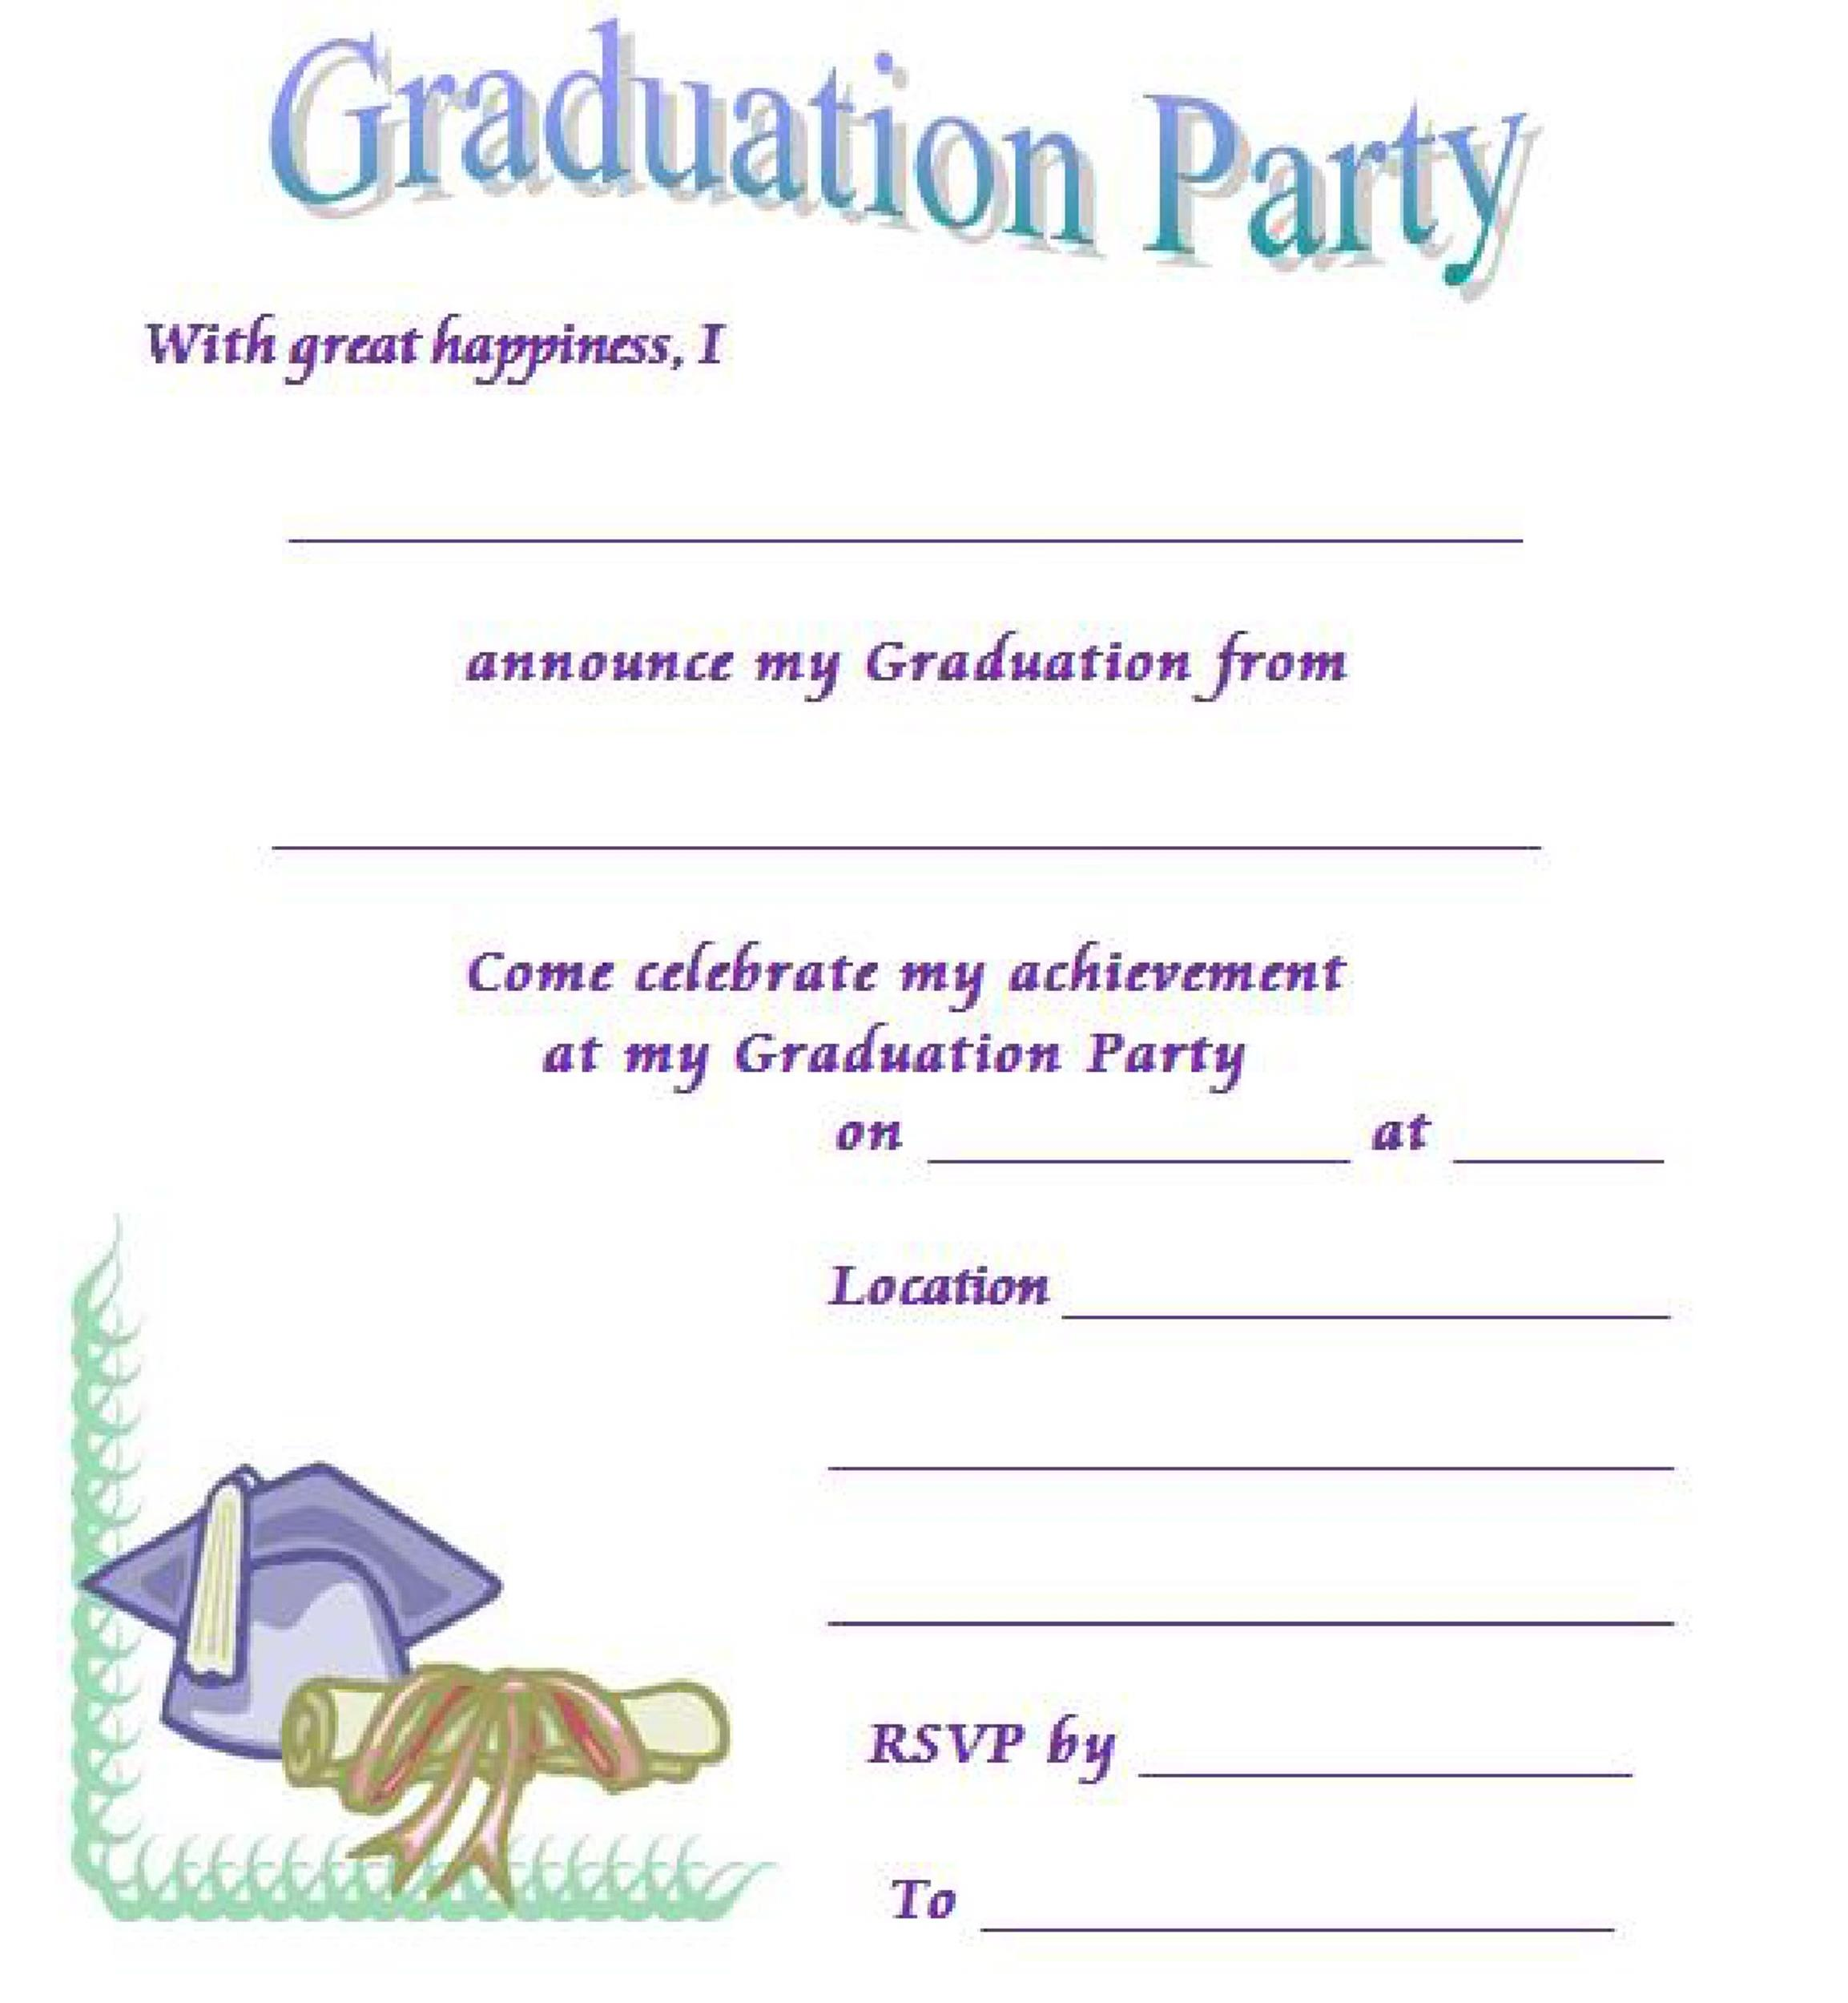 photo regarding Free Printable Graduation Party Games titled 40+ Cost-free Commencement Invitation Templates ᐅ Template Lab